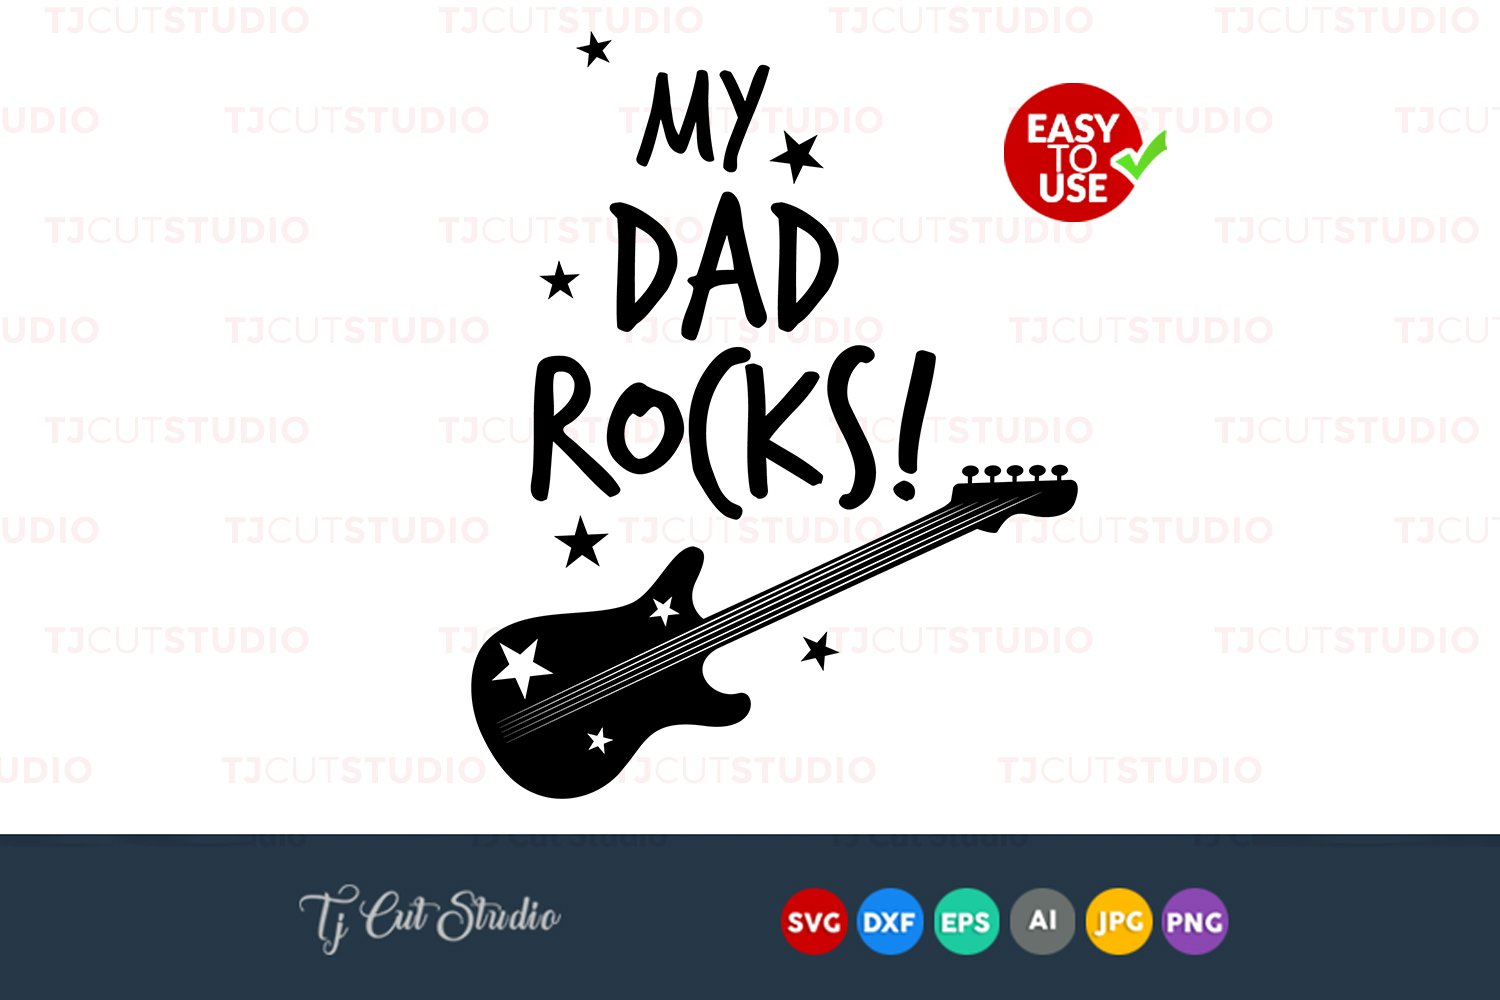 My Dad Rocks Svg My Dad Rocks Quote Svg Files For Silhouette Cameo Or Cricut Commercial Personal Use 96415 Cut Files Design Bundles